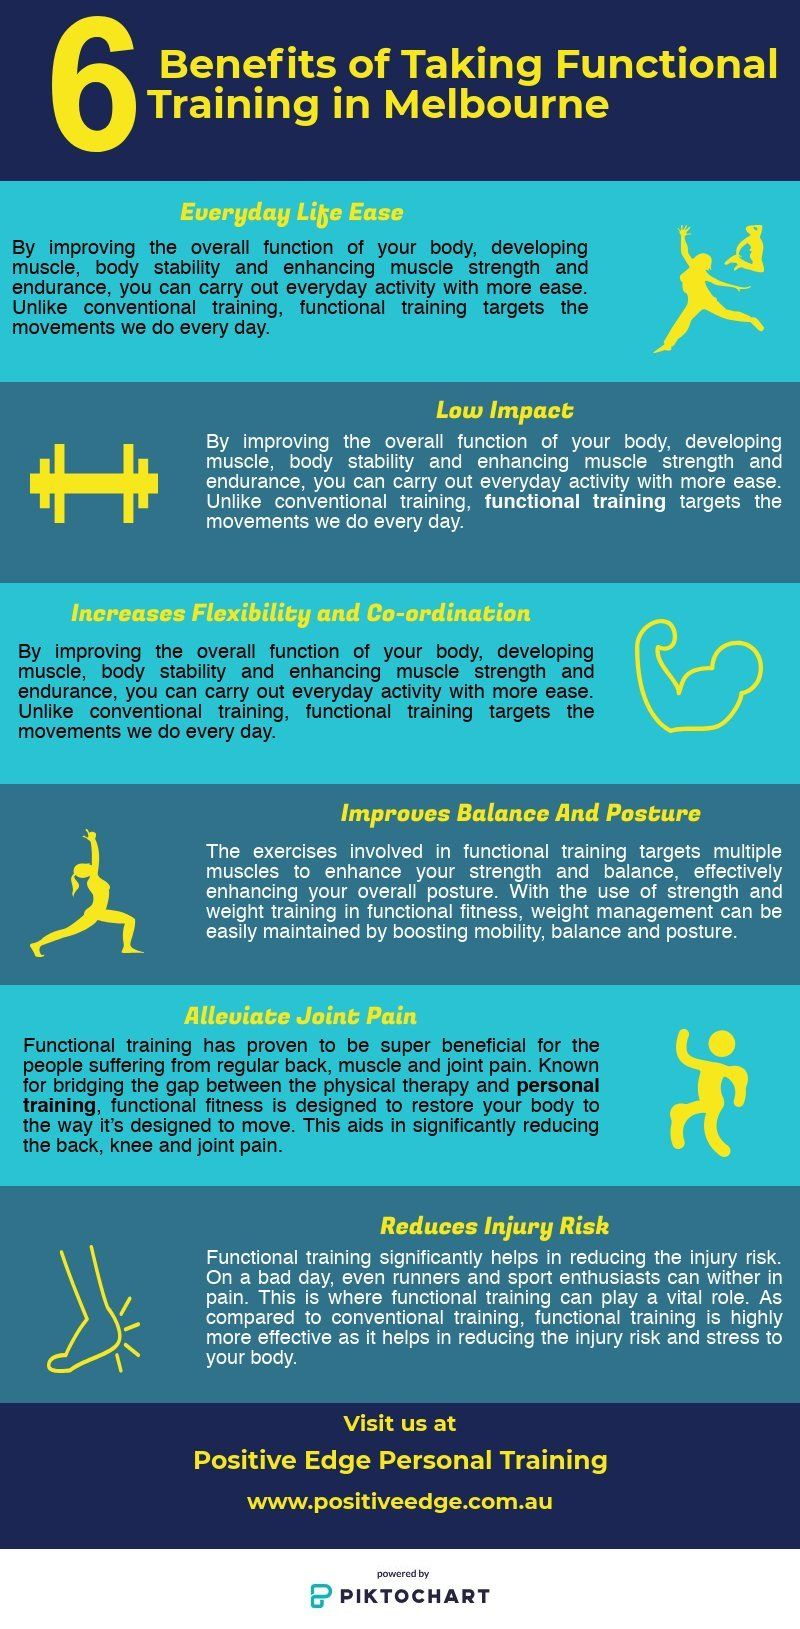 In this infographic you can find benefits about functional